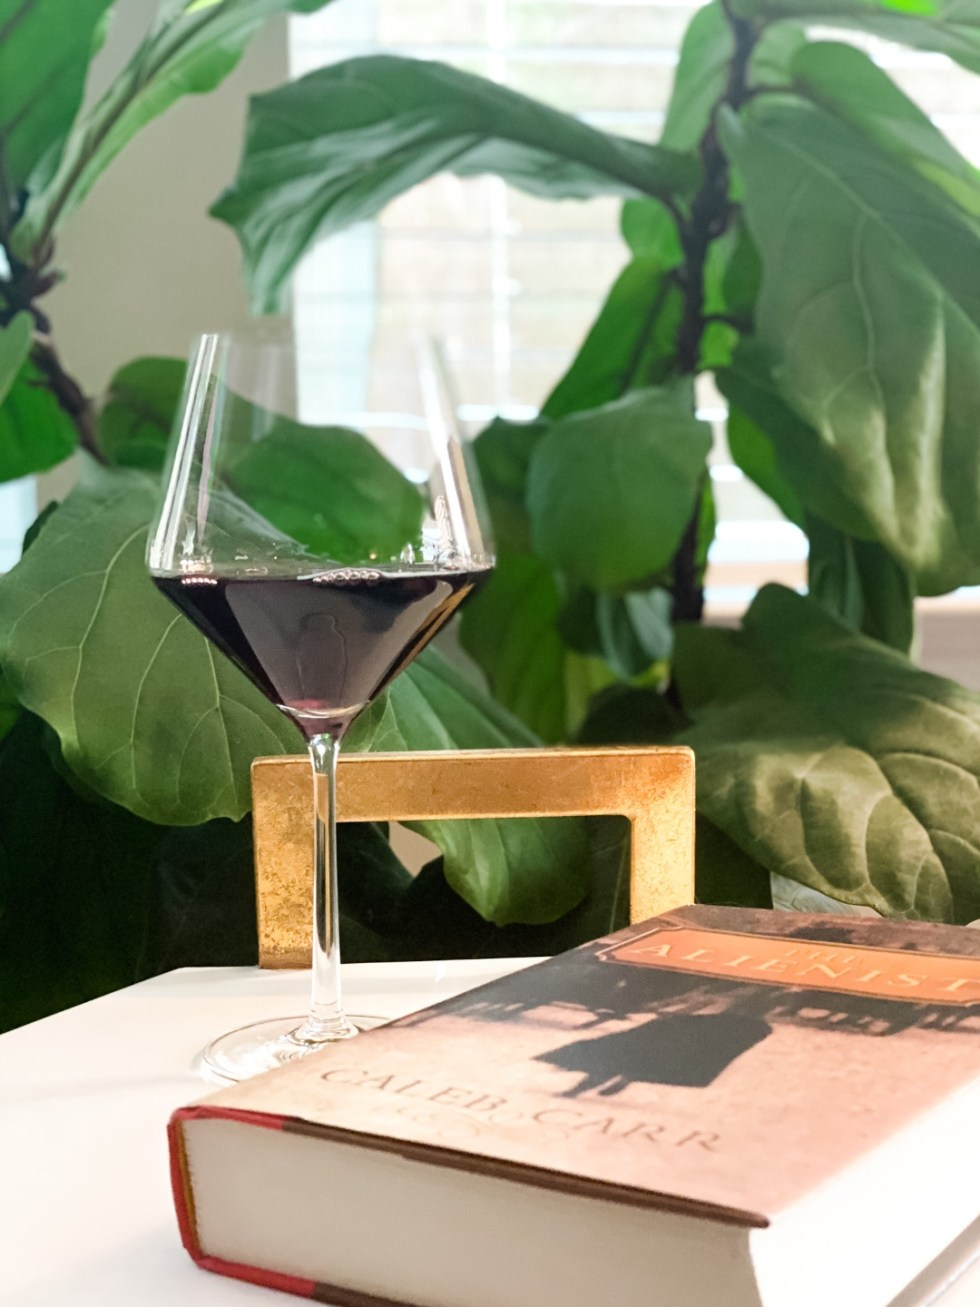 Top 5 Wine Glass Styles to Add to your Collection - I'm Fixin' To - @mbg0112   Wine Glass Styles by popular N.C. life and style blog, I'm Fixin' To: image of a Schott Zwiesel Burgundy glass.